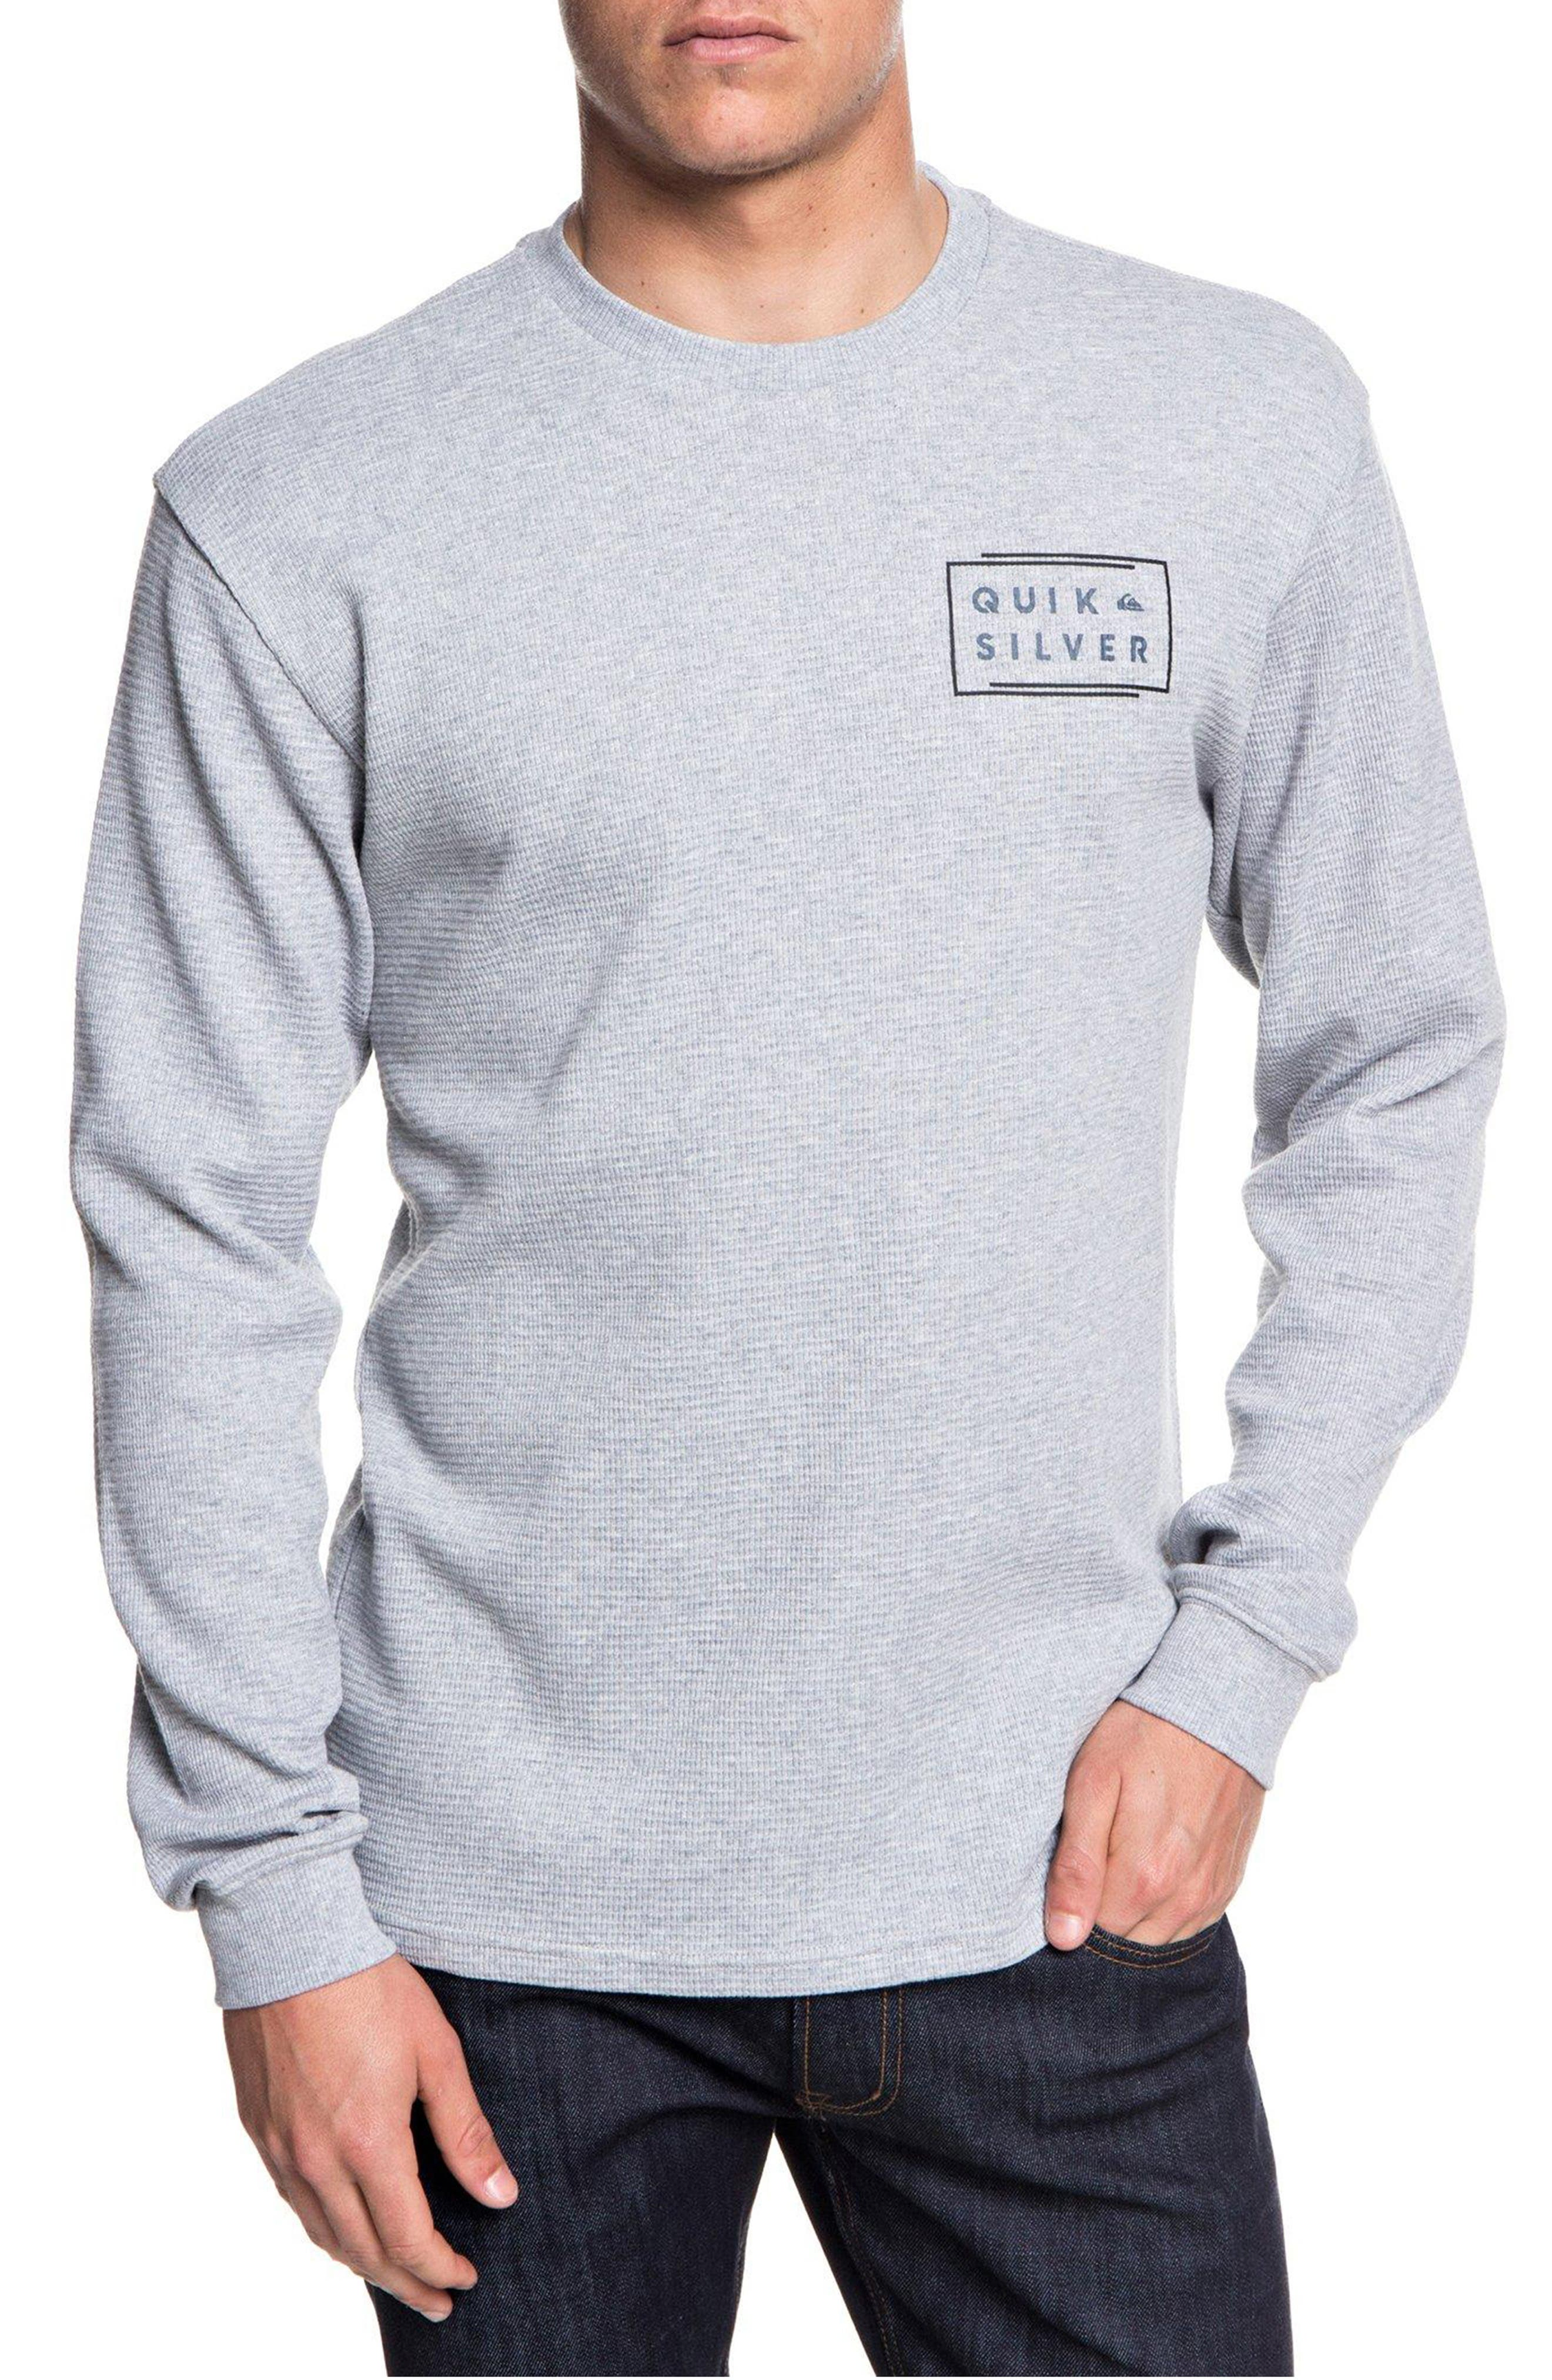 Worldwide Thermal T-Shirt,                             Main thumbnail 1, color,                             ATHLETIC HEATHER